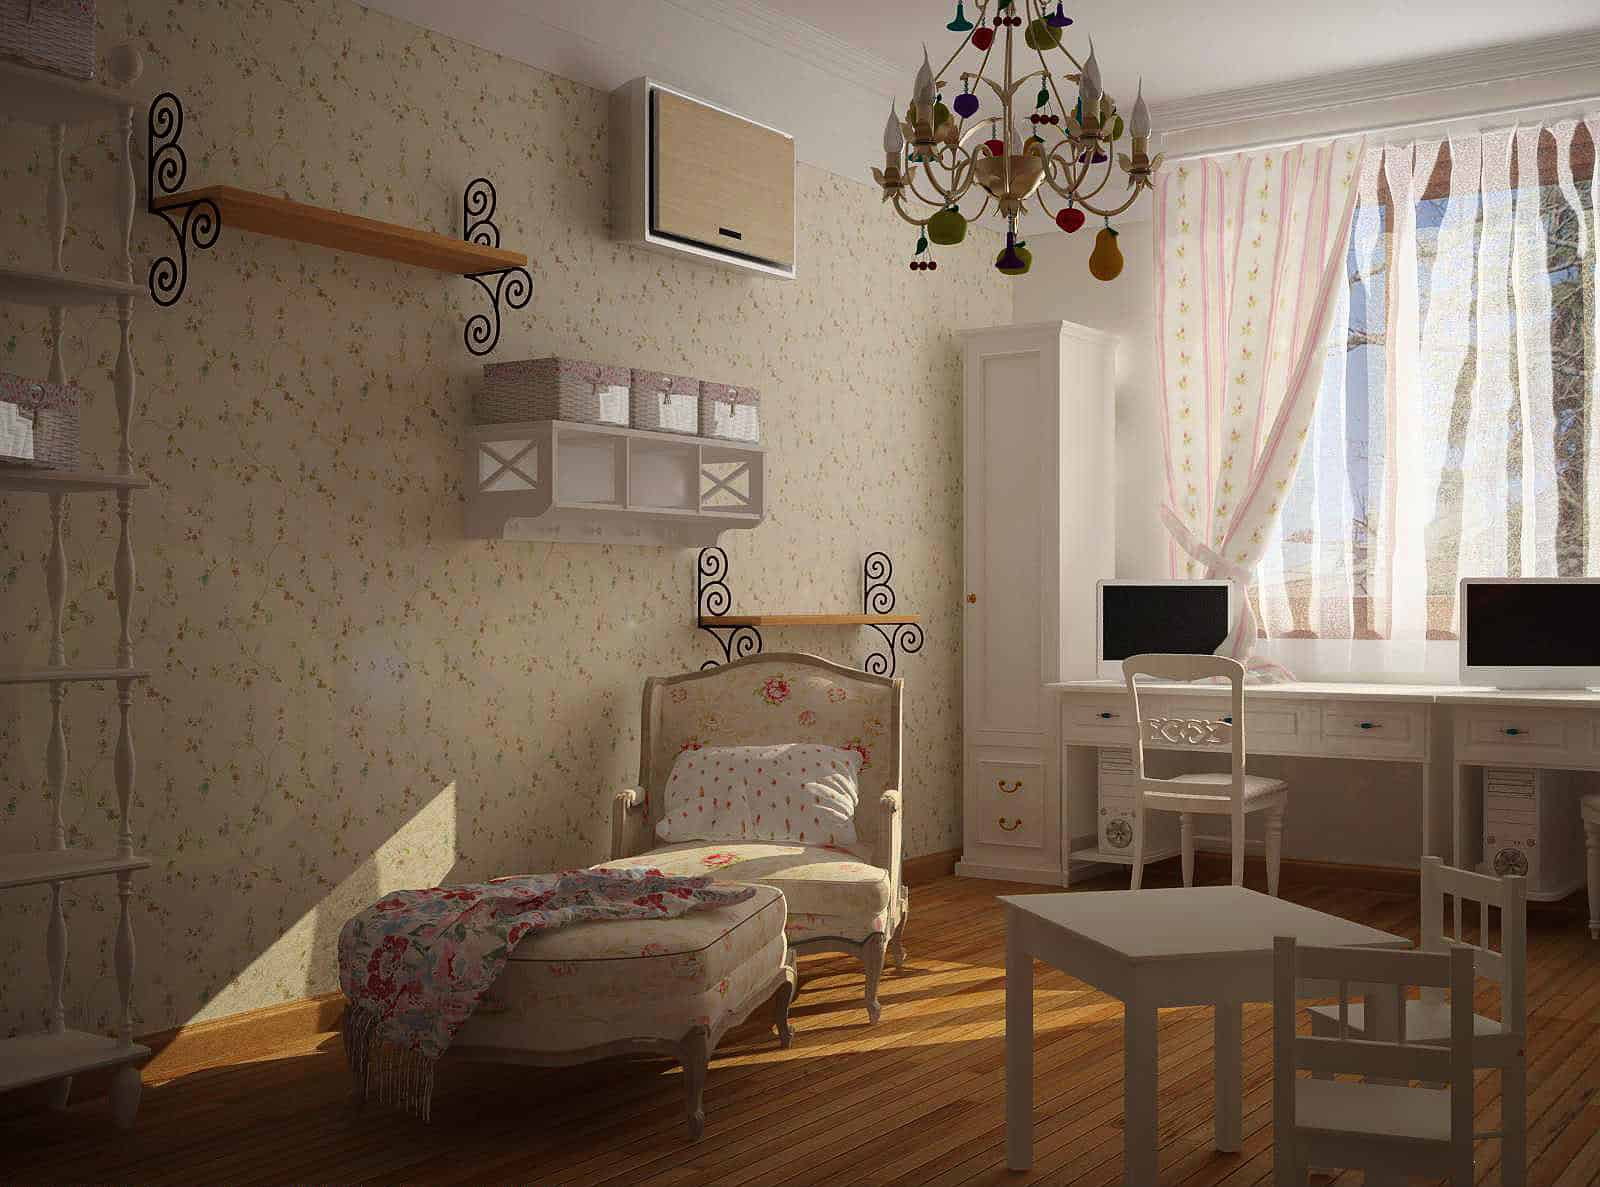 Kids room ideas french country decor house interior for French country house interior